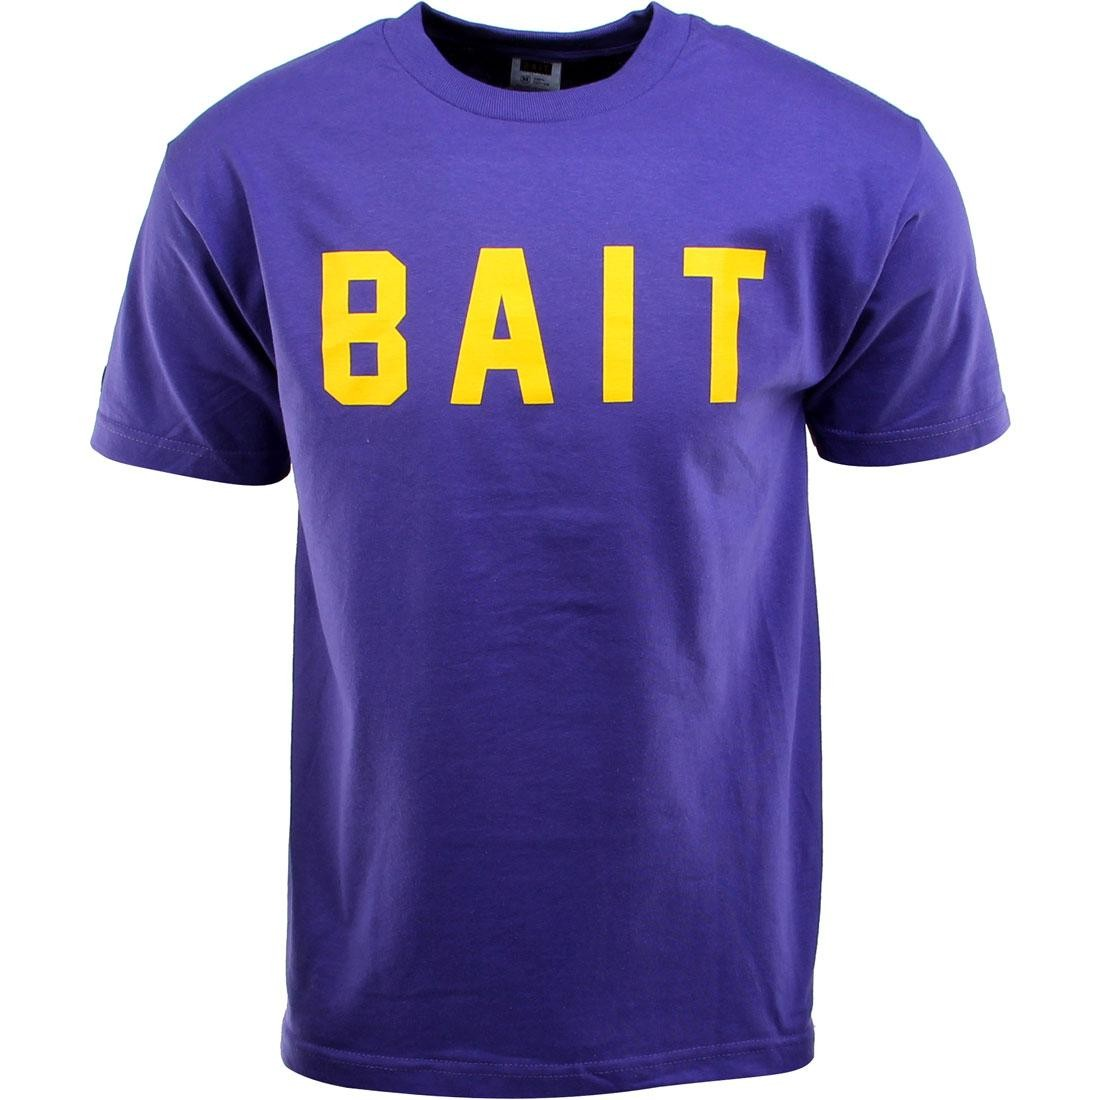 BAIT Logo Tee (purple / yellow)